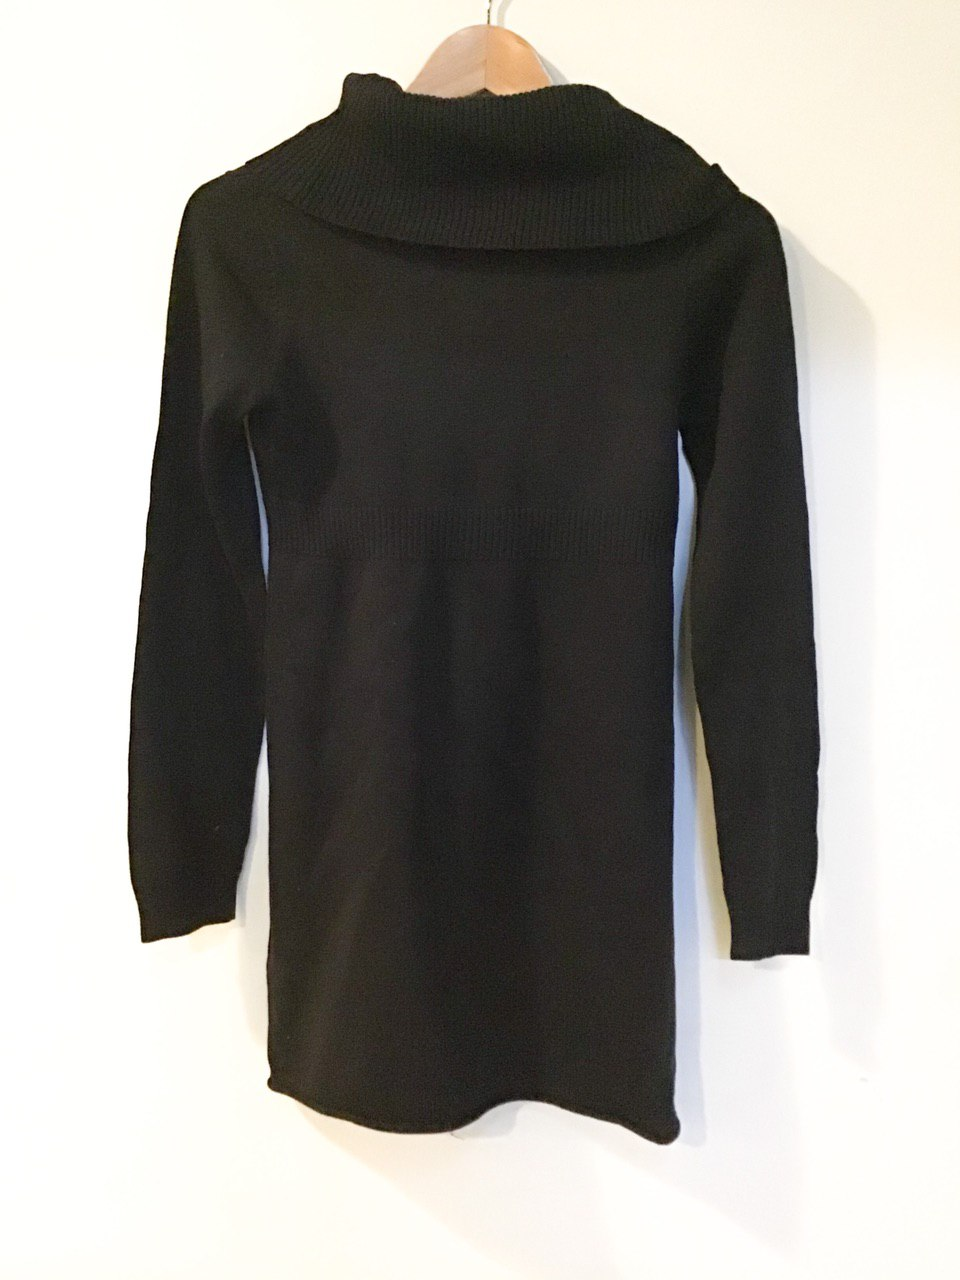 BJ1471 H&M YOUNG KNITWEAR